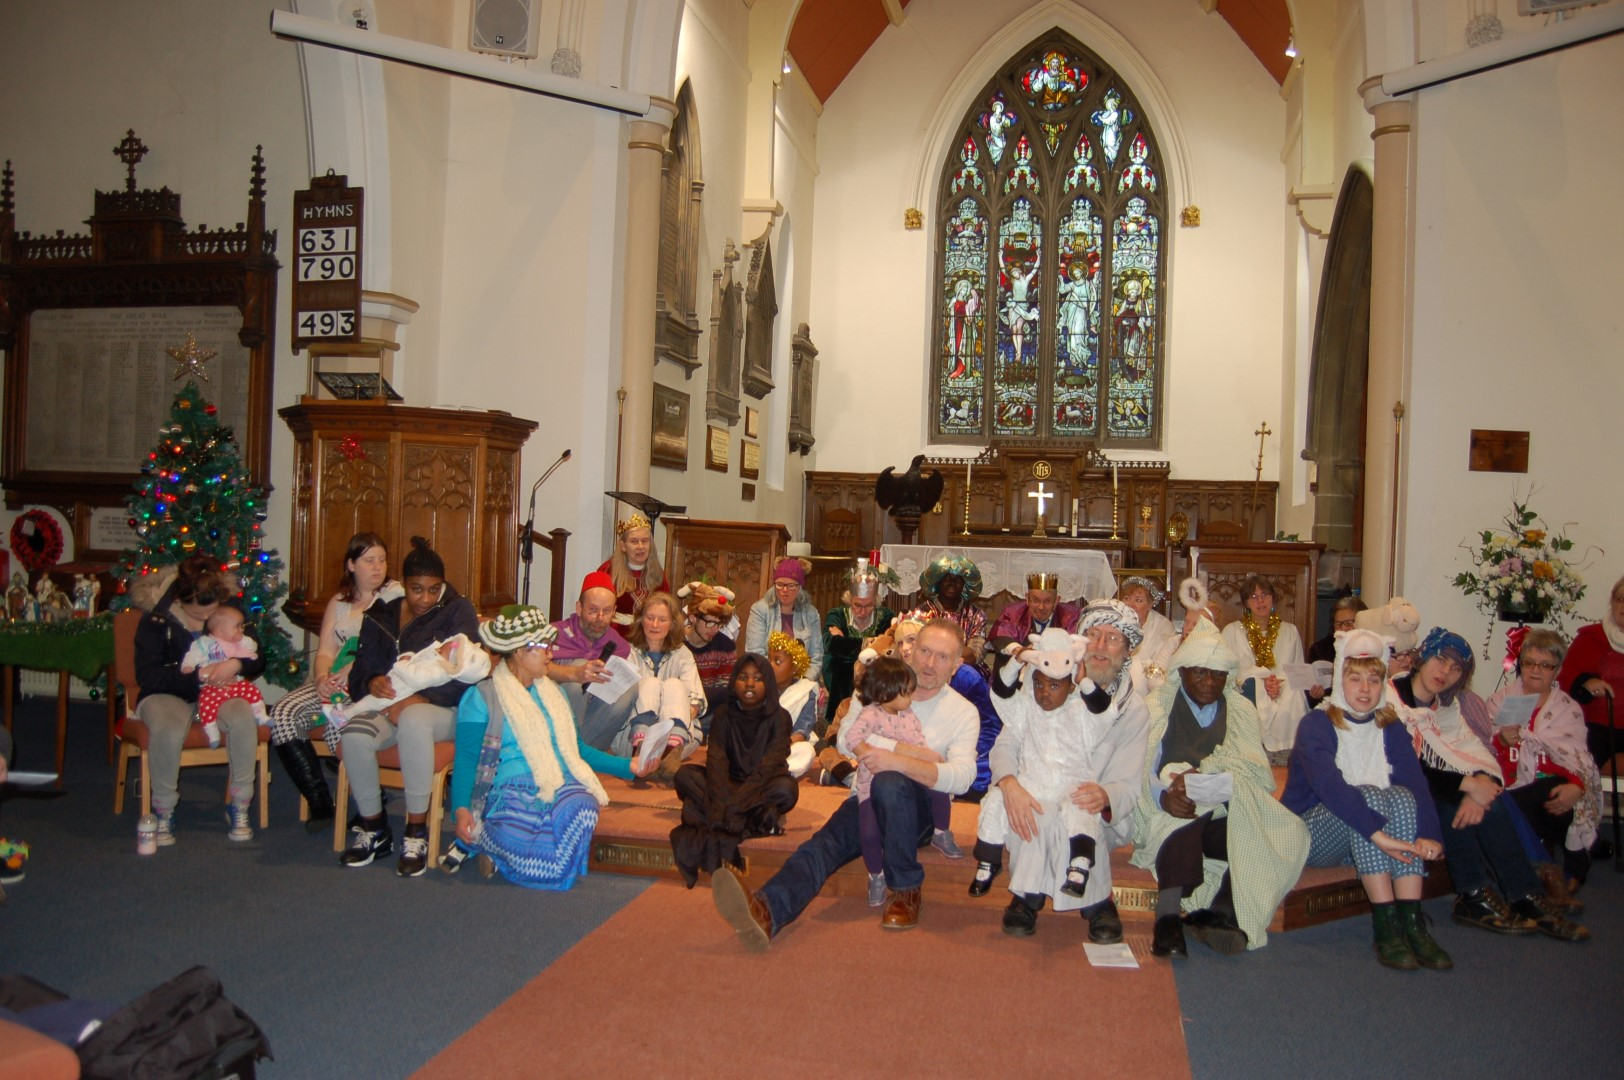 Parents and children sit by the alter in Christ Church dressed in nativity costumes.